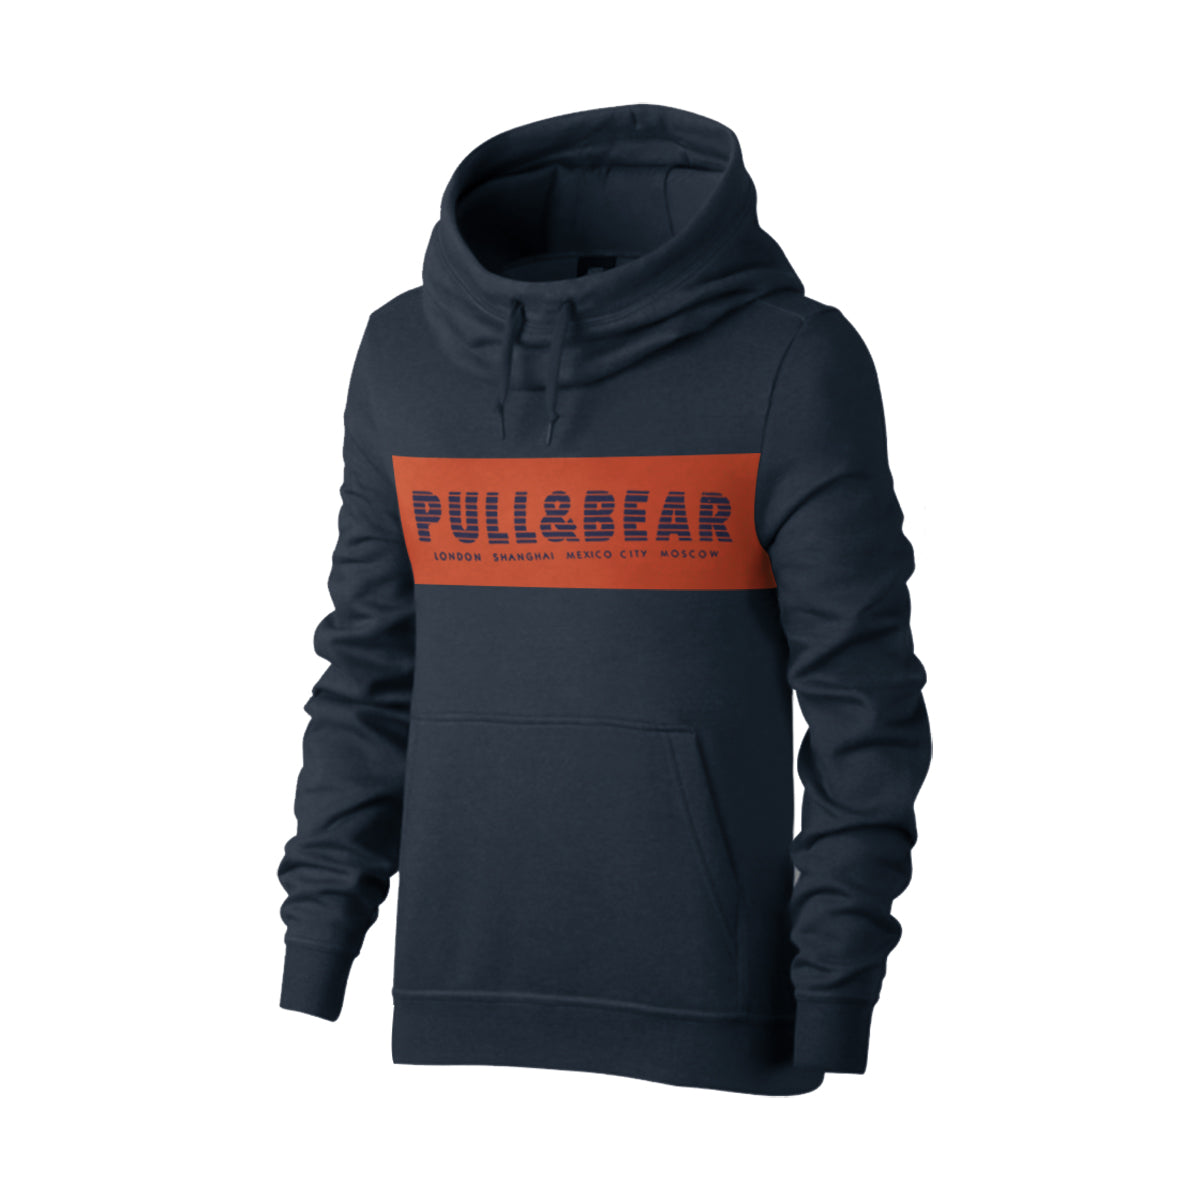 P&B Fleece Pullover Hoodie For Men-Dark Mid Navy with Orange Panel-BE13827